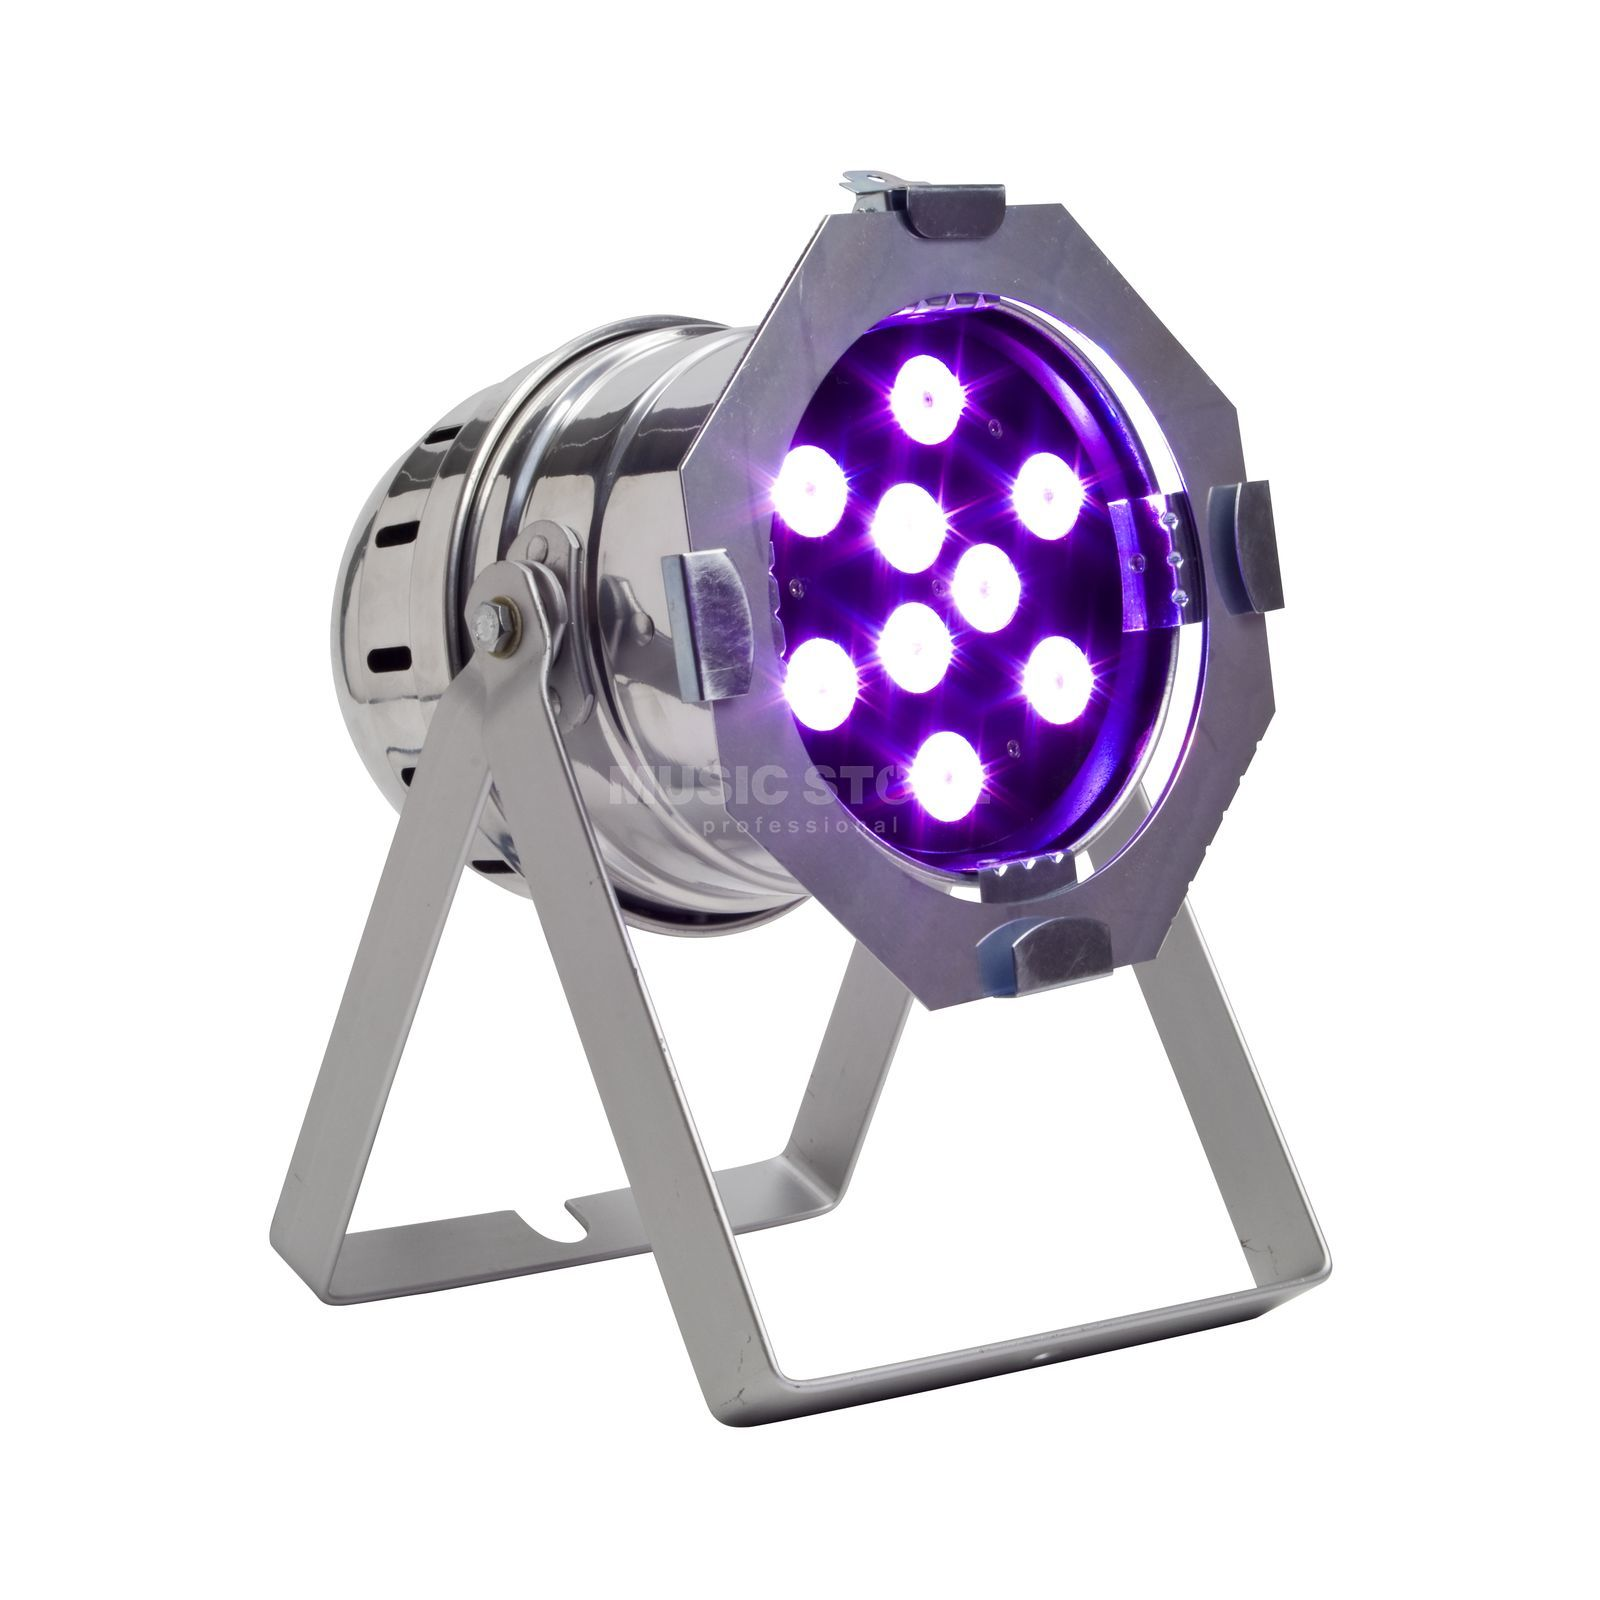 lightmaXX Platinum LED PAR 56 Tri-LED 9x 3 Watt, polish Produktbillede